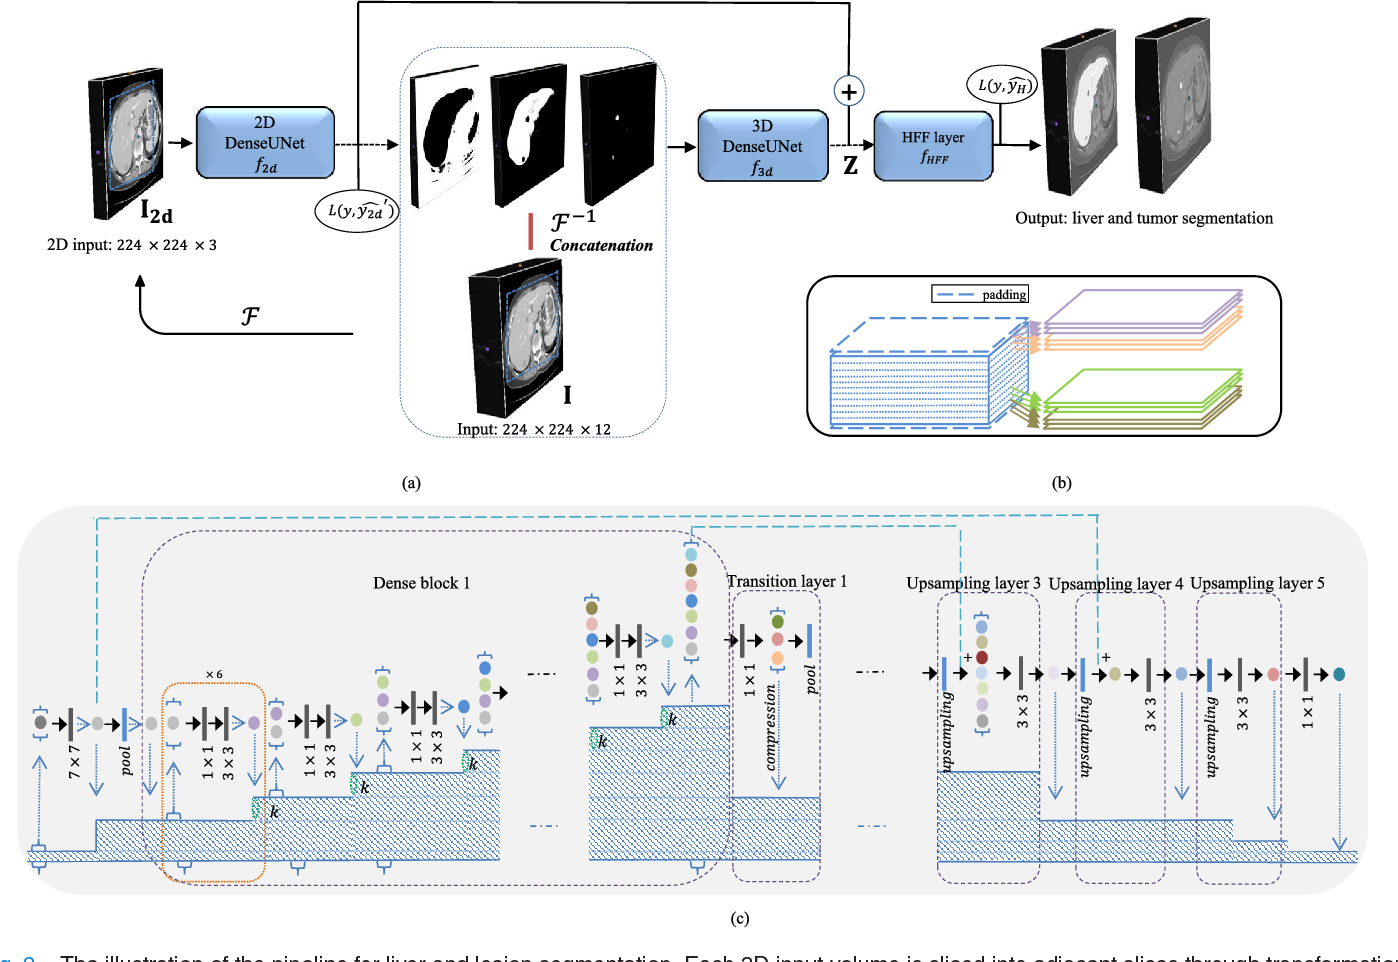 H-DenseUNet: Hybrid Densely Connected UNet for Liver and